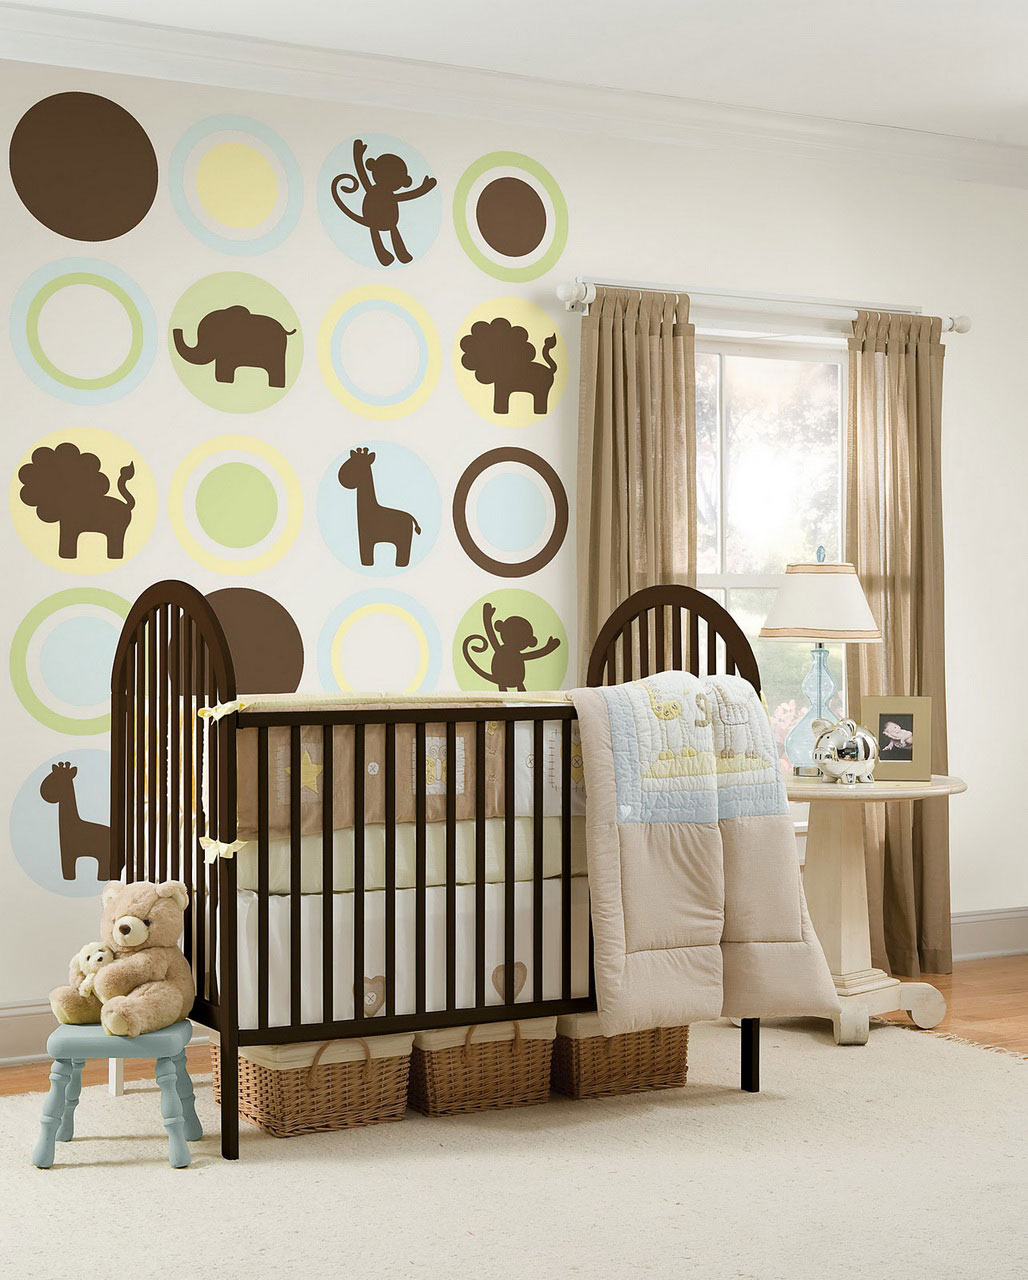 ������ ����� ٢٠١٤ ����� ������ interior-sweet-interior-design-for-baby-rooms-design-with-animal-nuance-and-light-brown-accent-inspiration-lovely-interior-design-for-baby-rooms-design.jpg